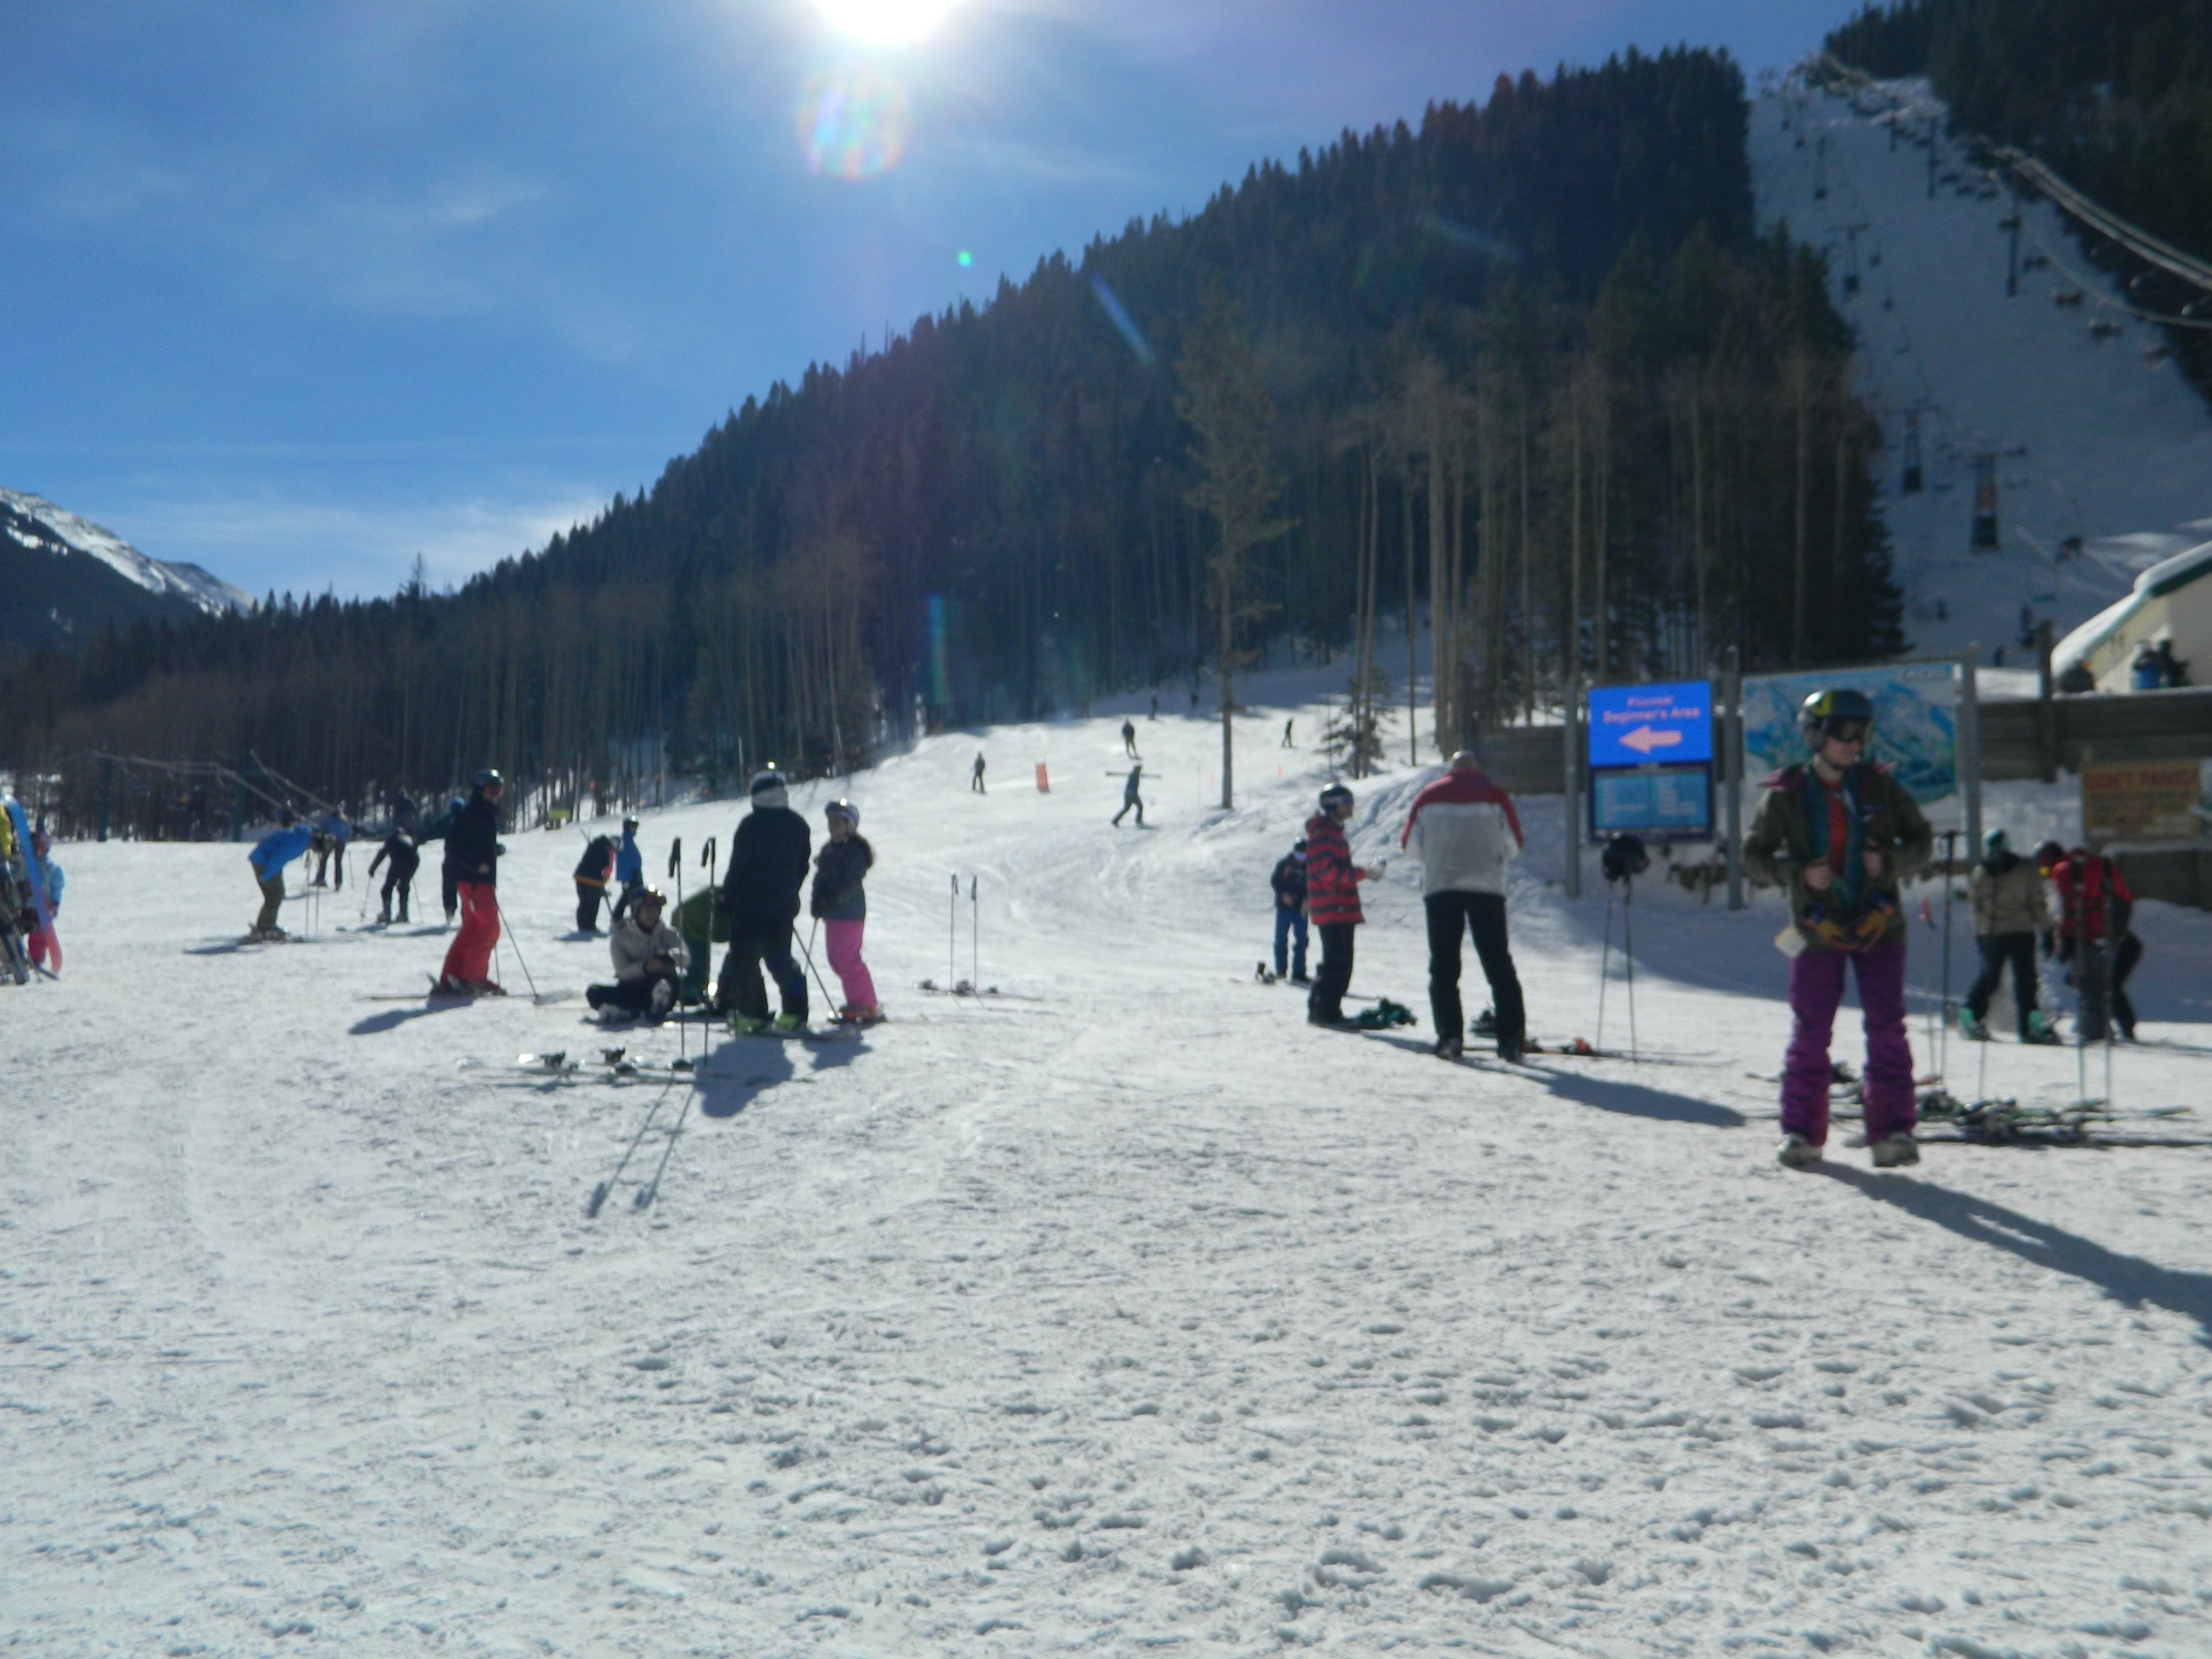 Sun and lens flare looking up at steep chairlift run at Taos Ski Valley. Skiers milling about and preparing.